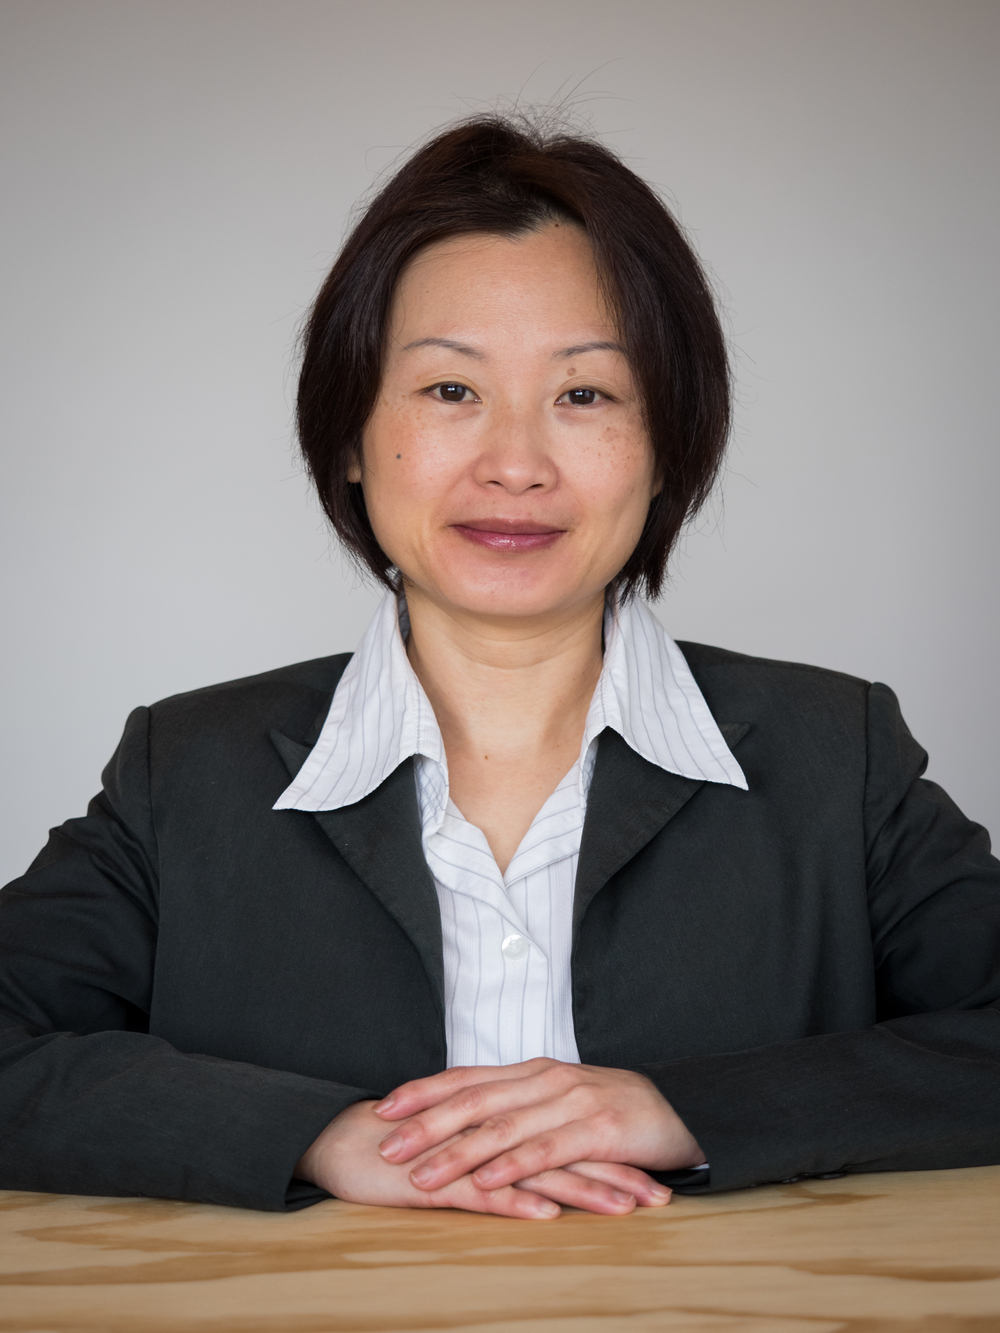 AiLin Sung, Finance Manager